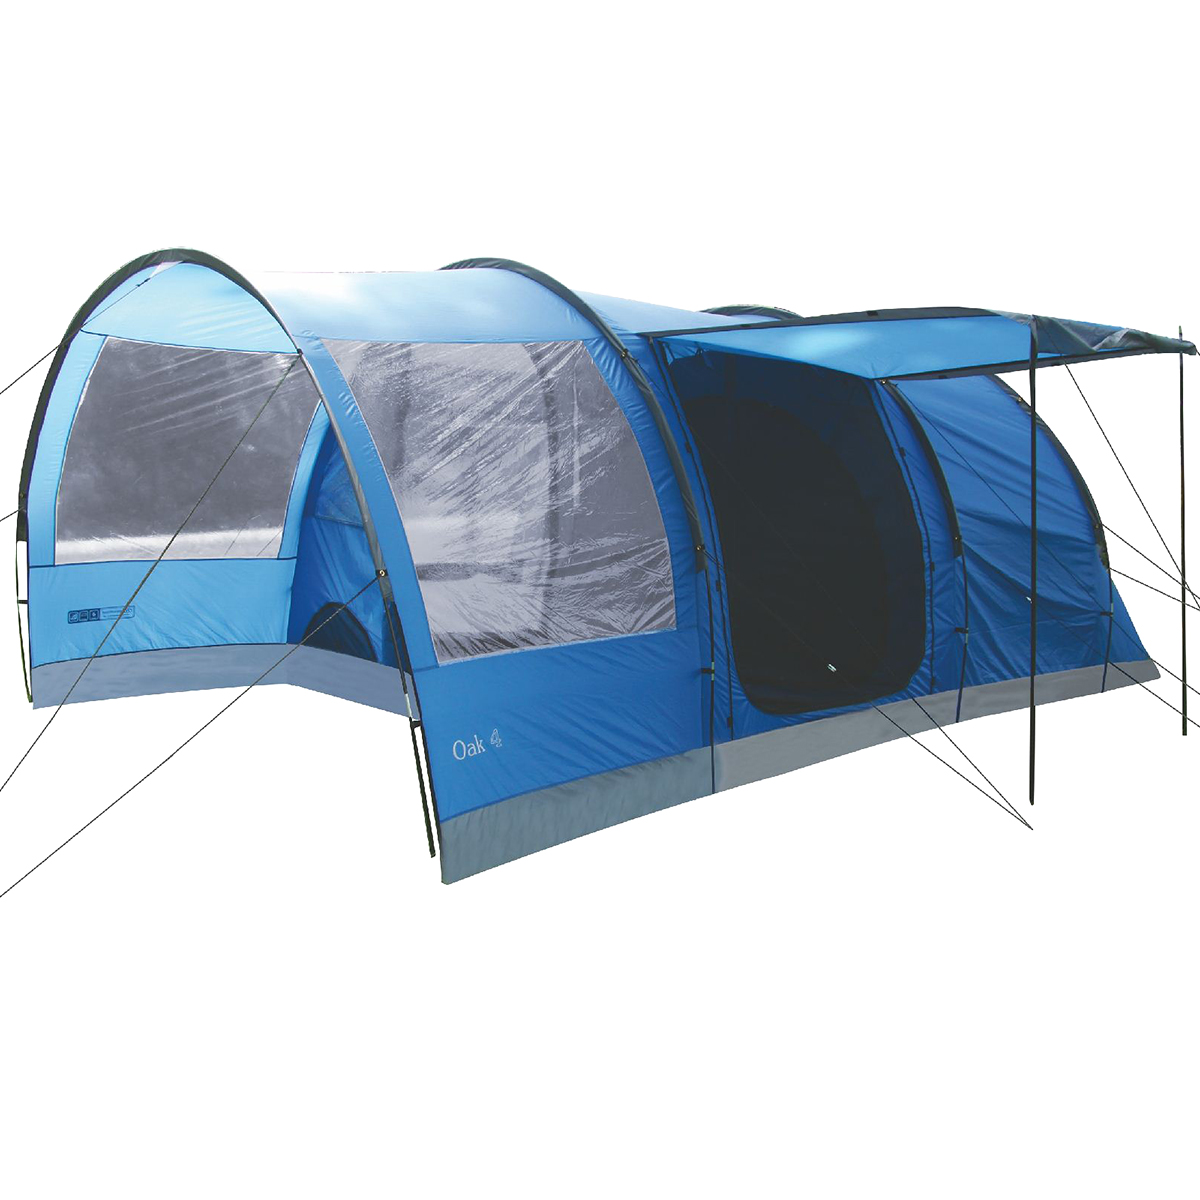 Details about Highlander Oak 4 Person Large Family C&ing Holiday Tunnel Tent Imperial Blue  sc 1 st  eBay & Highlander Oak 4 Person Large Family Camping Holiday Tunnel Tent ...